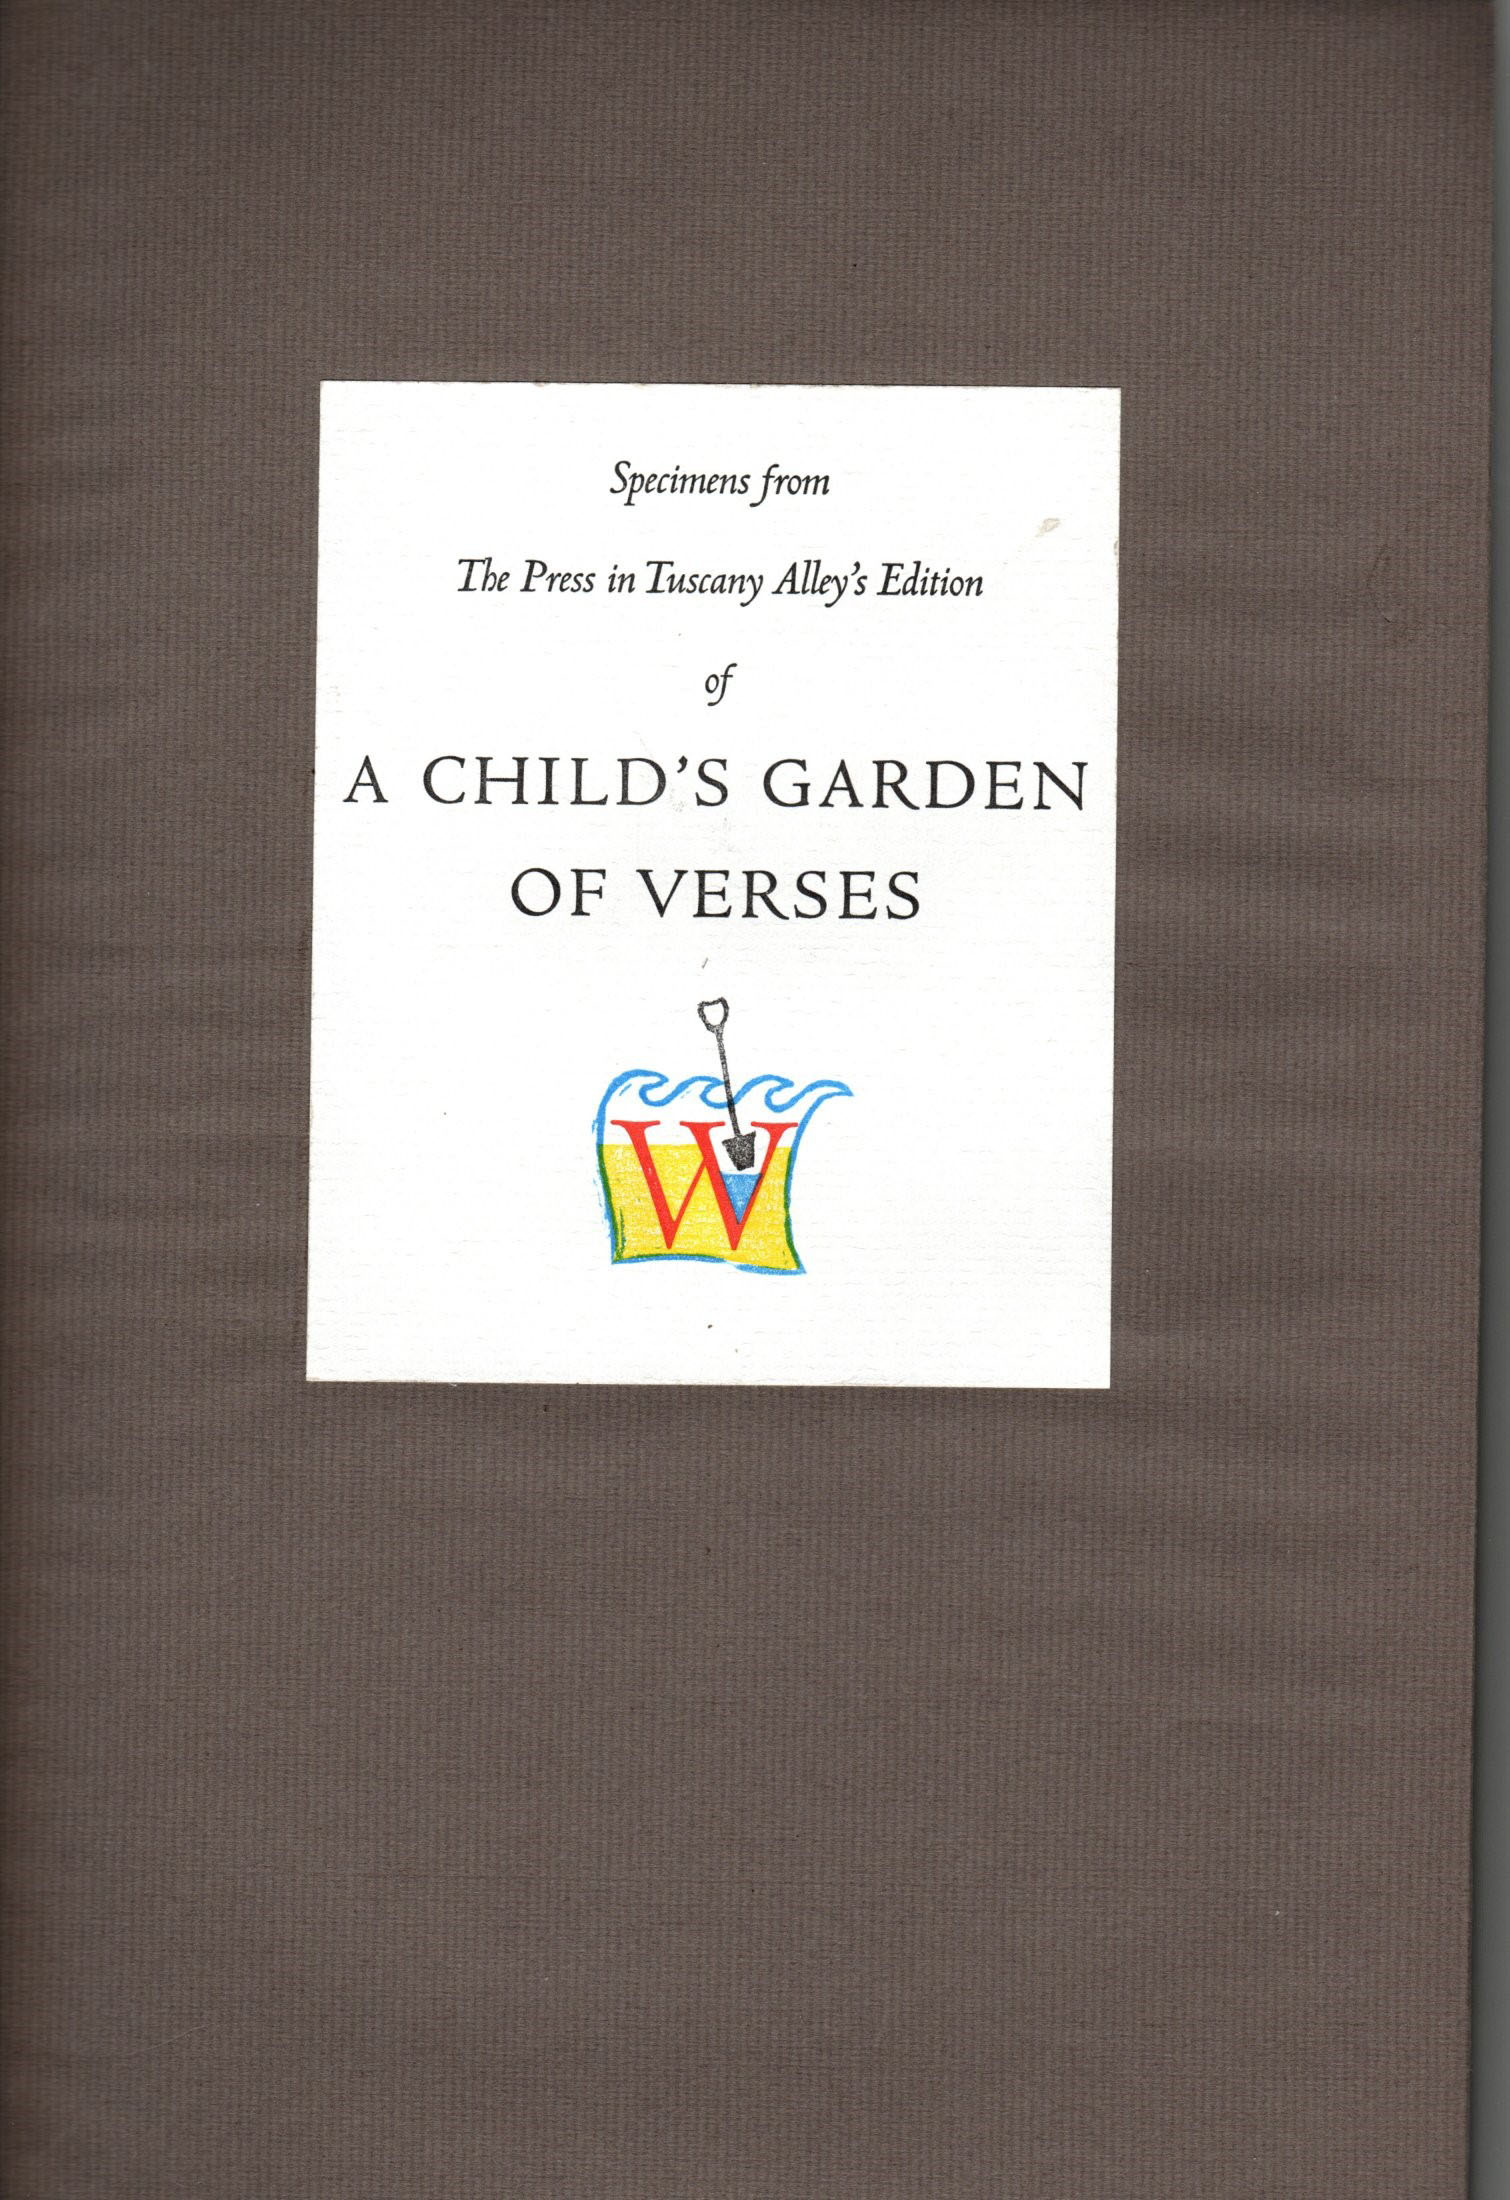 Image for Specimens from A Child's Garden of Verses : with nine poems not published in prior editions.  Illustrations by Joyce Lancaster Wilson; Introduction by Janet Adam Smith.